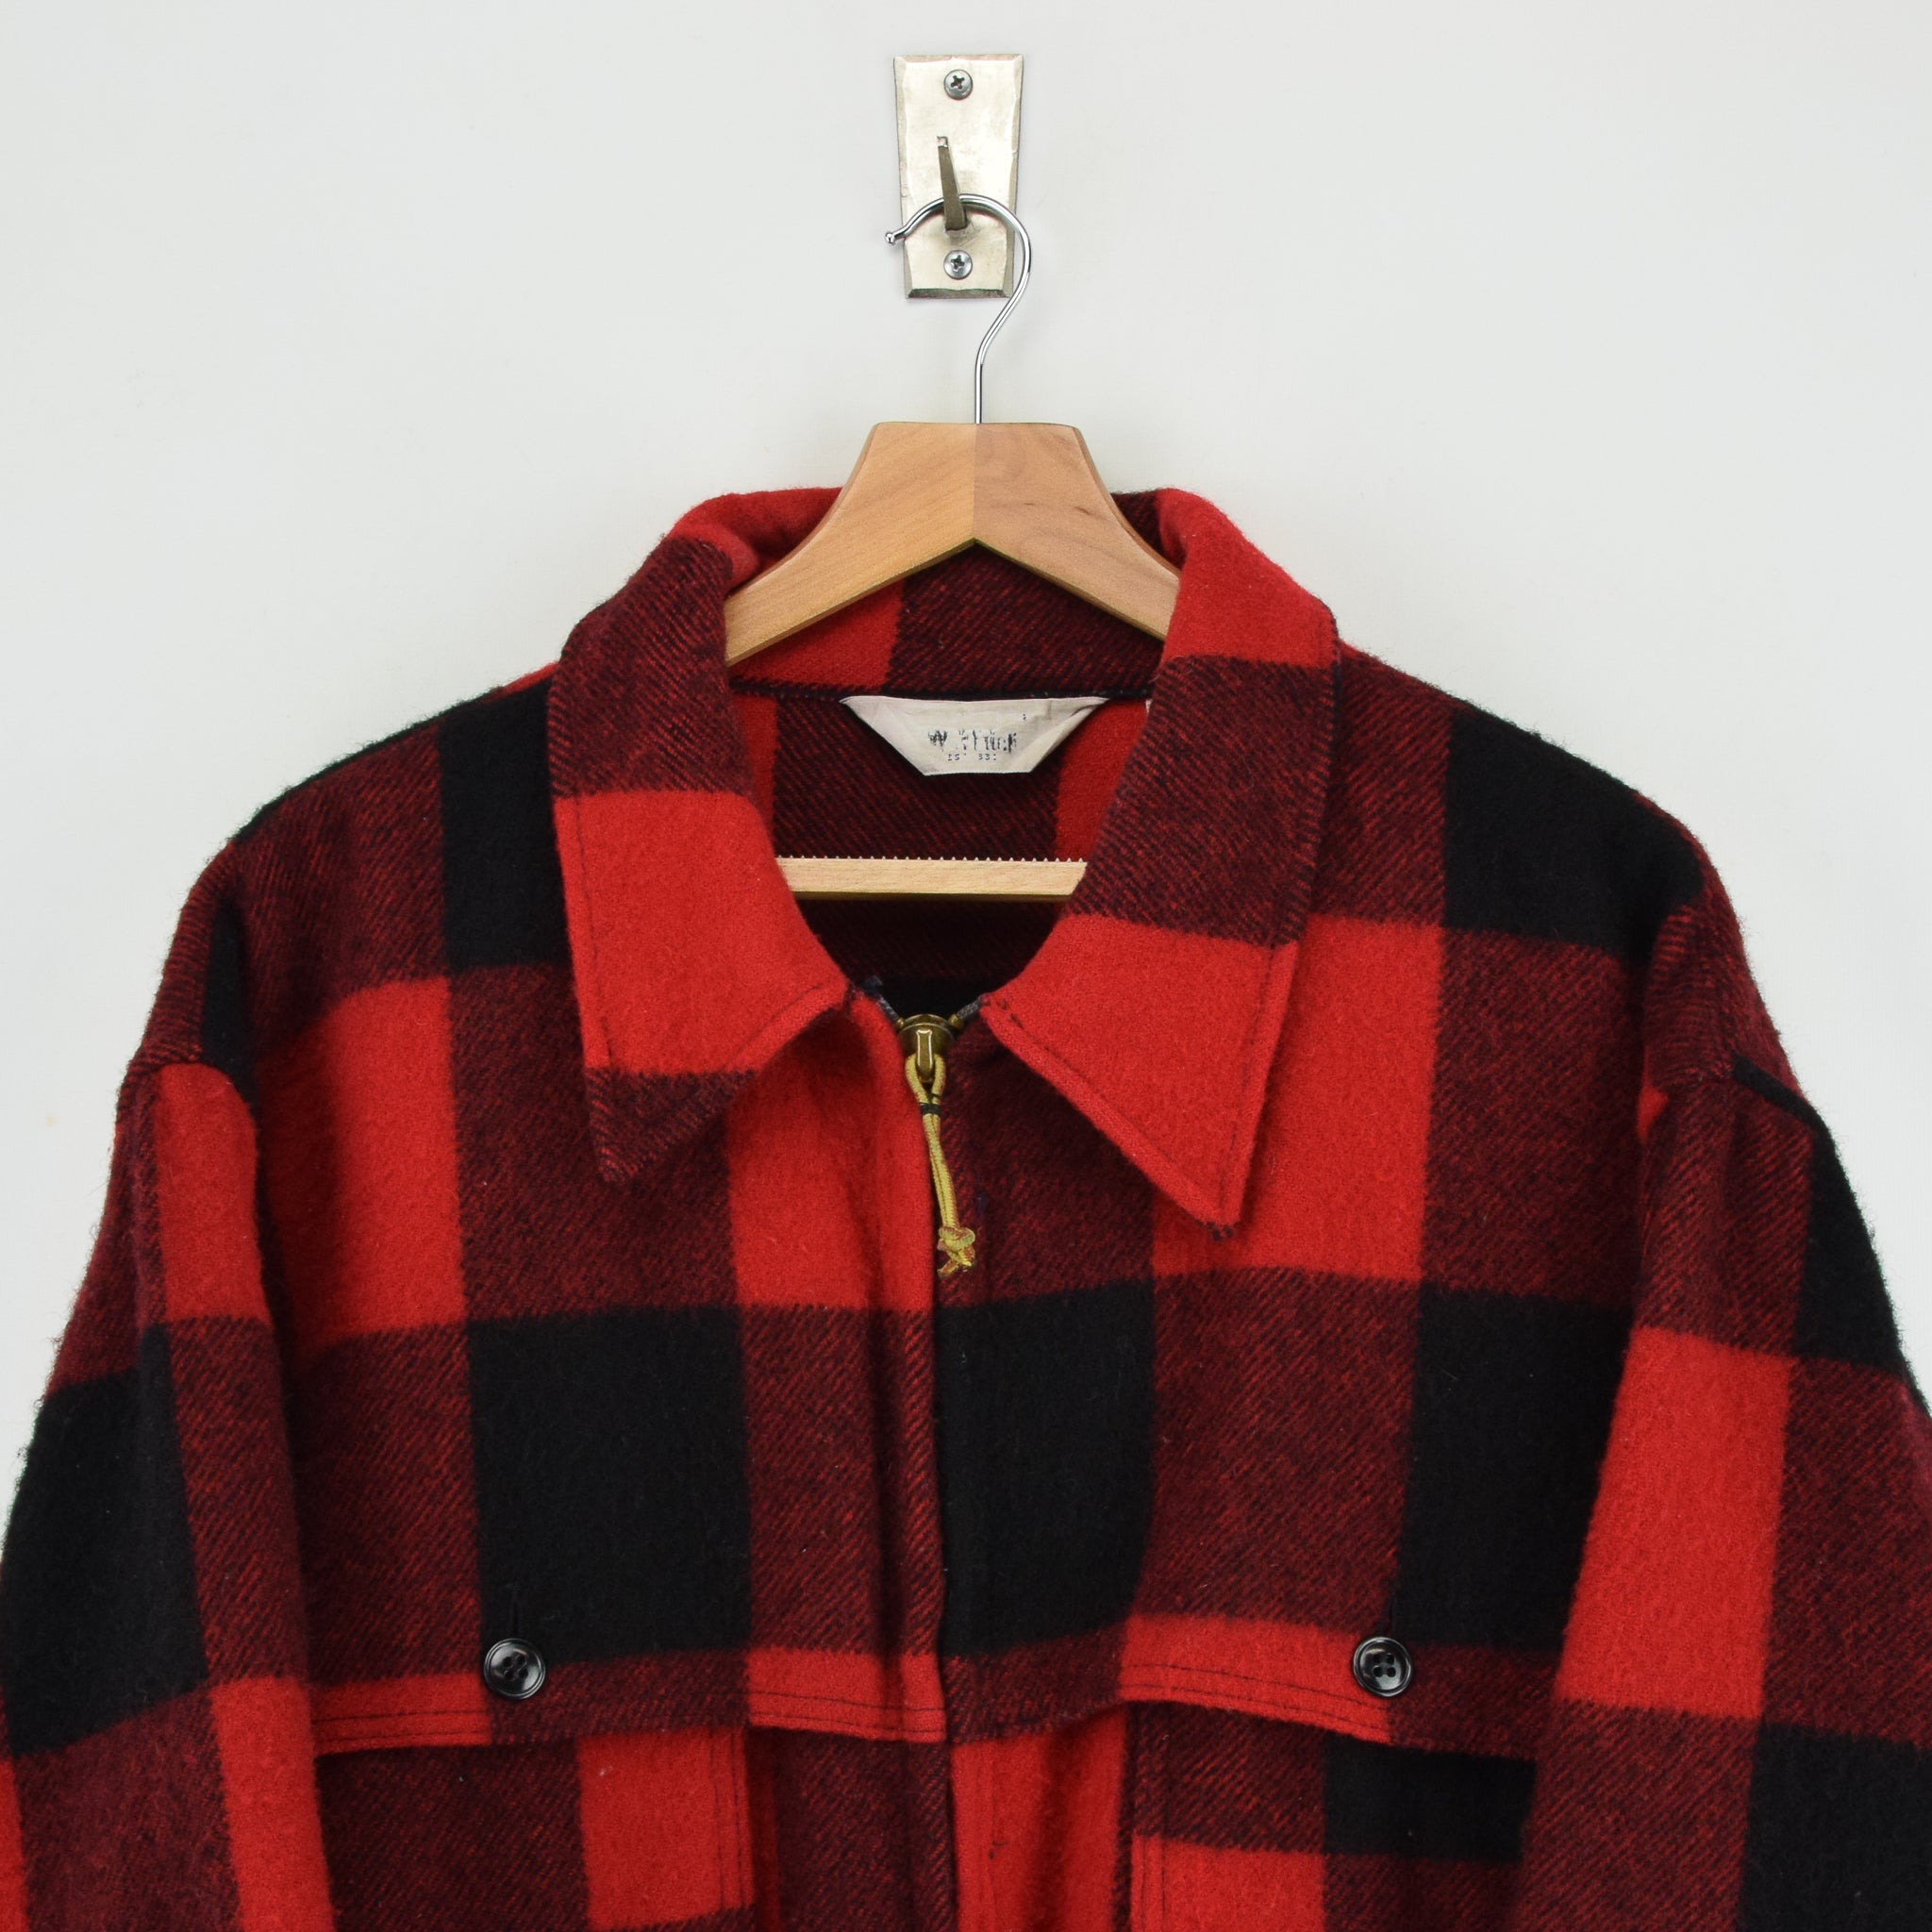 Vintage 70s Woolrich Buffalo Plaid Hunting Mackinaw Shirt Jacket Made in USA XXL chest